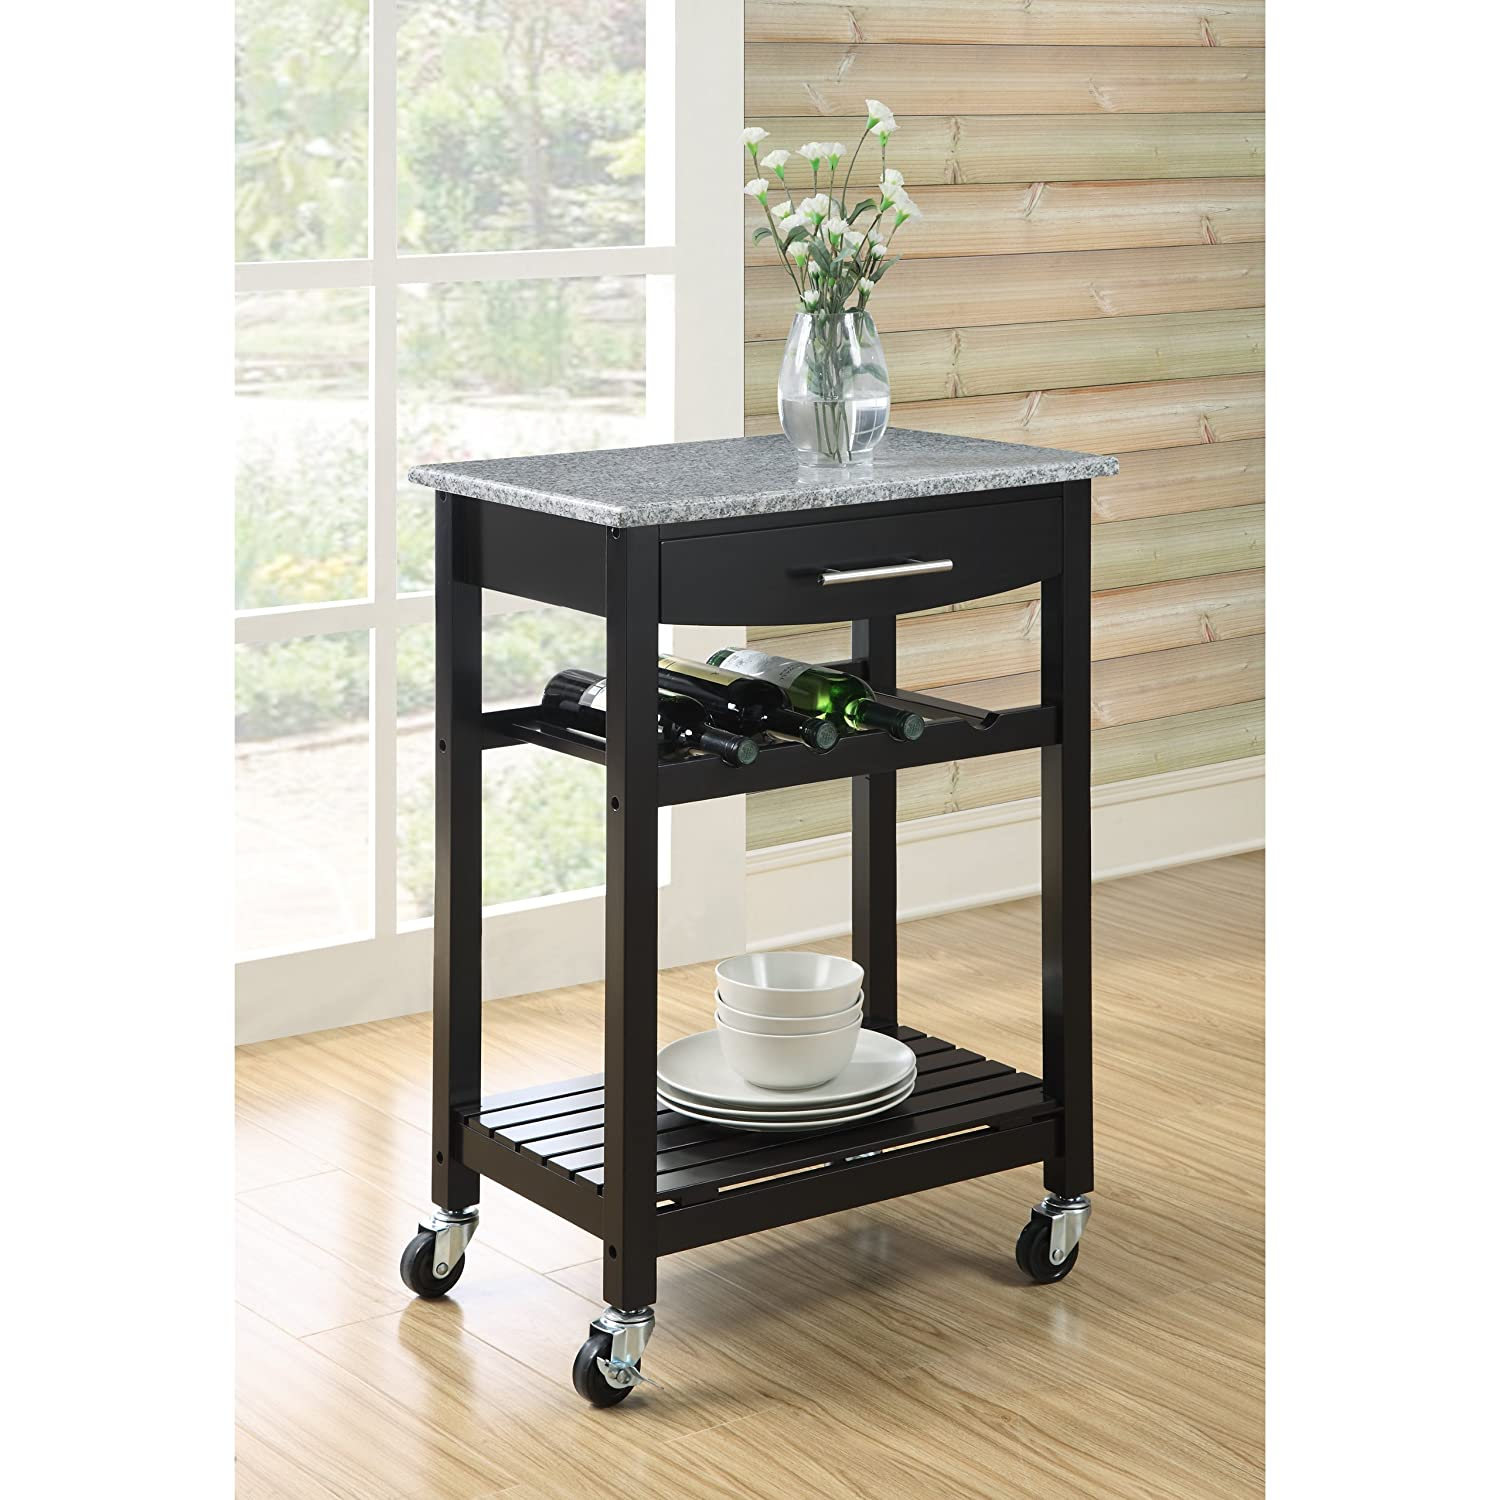 Amazon.com   Dorel Living Granite Top Kitchen Cart   Kitchen Islands U0026 Carts